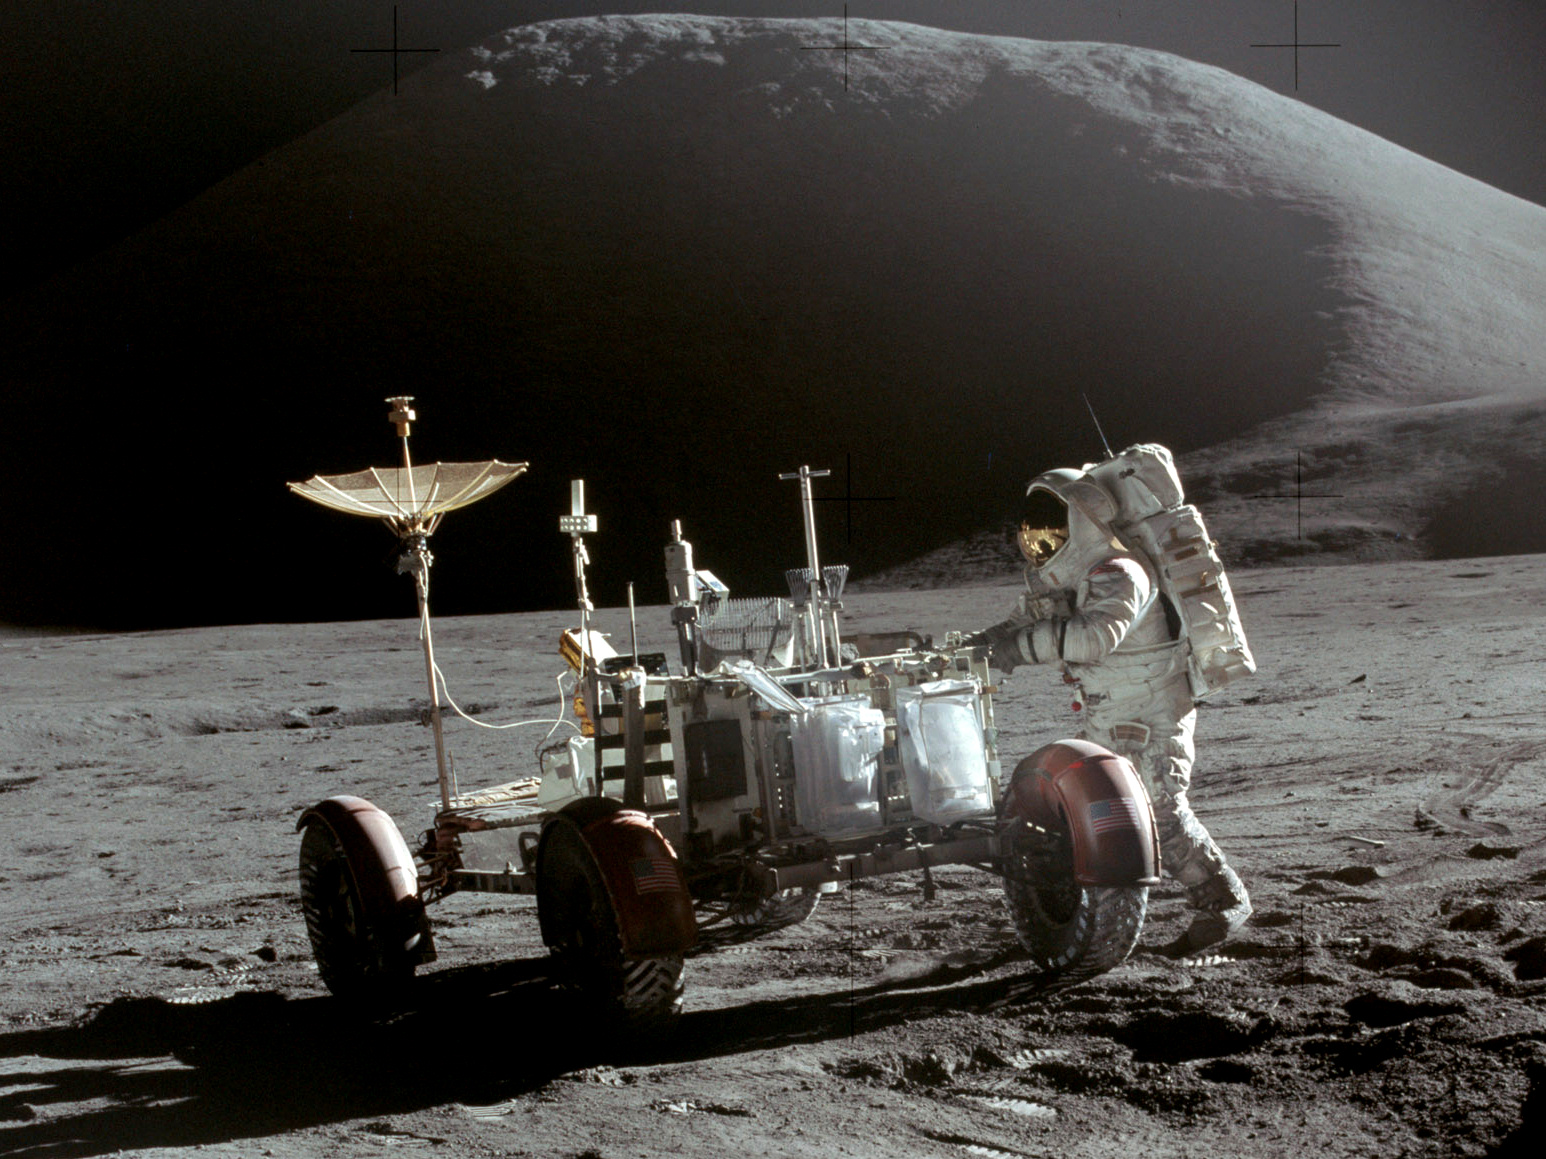 North Korea Is Planning To Invade Moon And Claim It For Themselves Apollo 15 Lunar Rover and Irwin